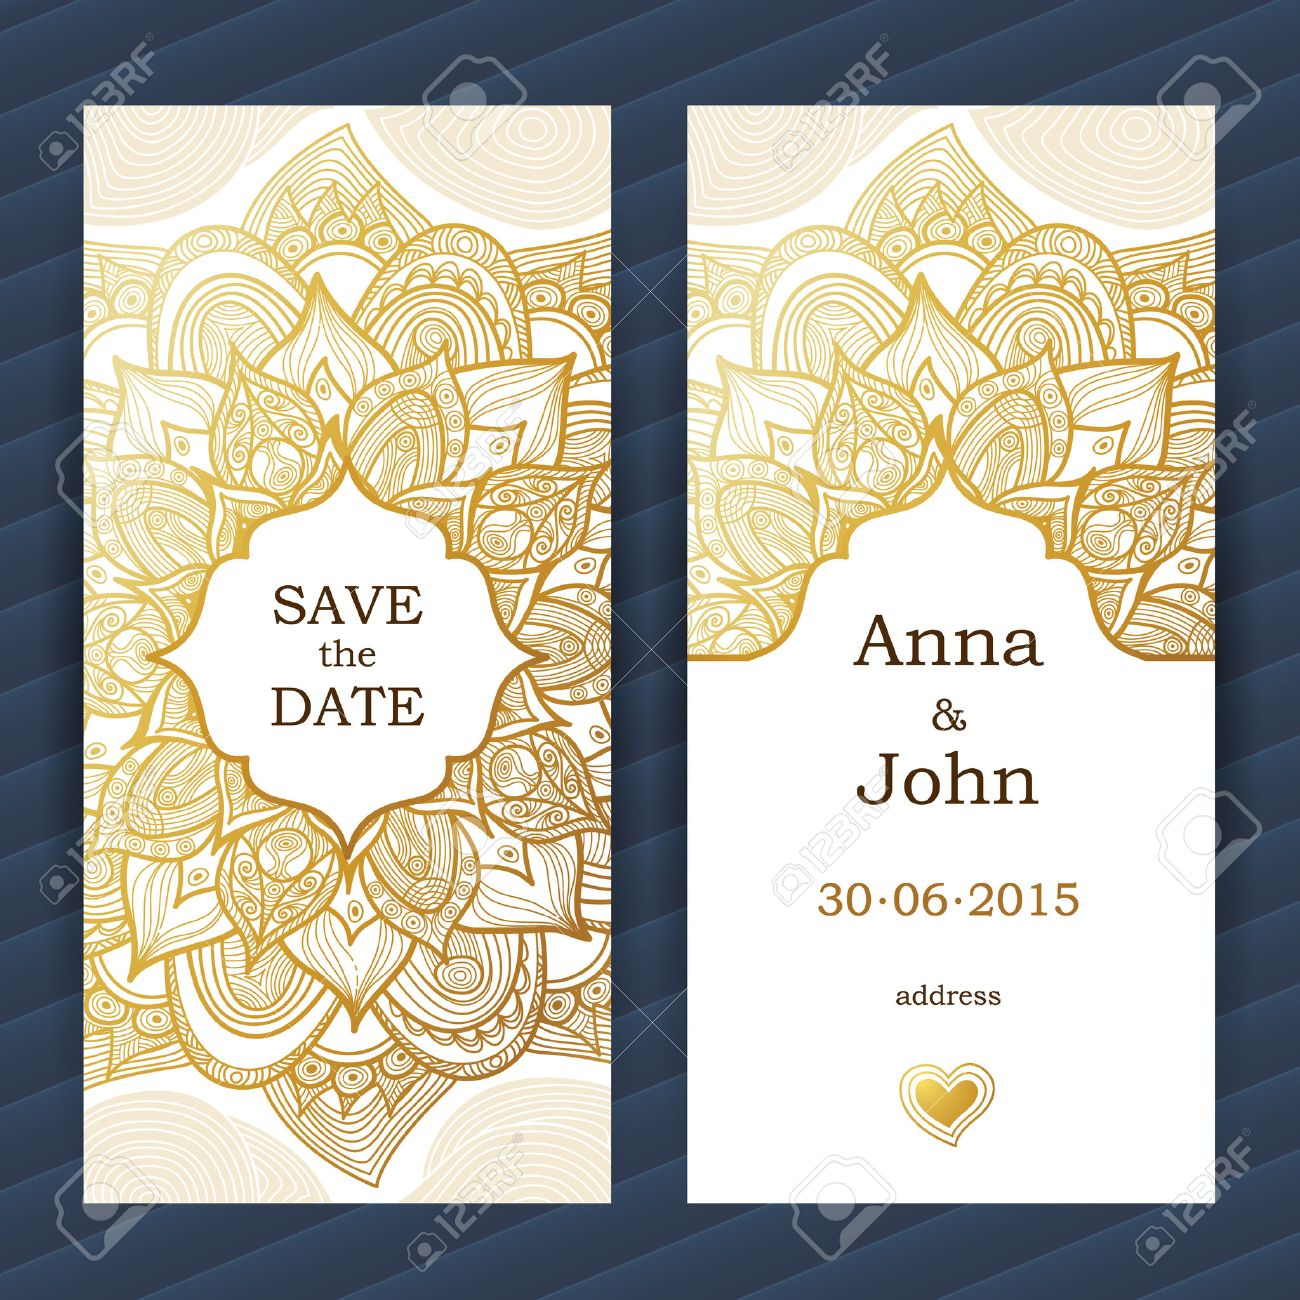 template frame for save the date and greeting card wedding invitation vector border with place for text easy to use layered